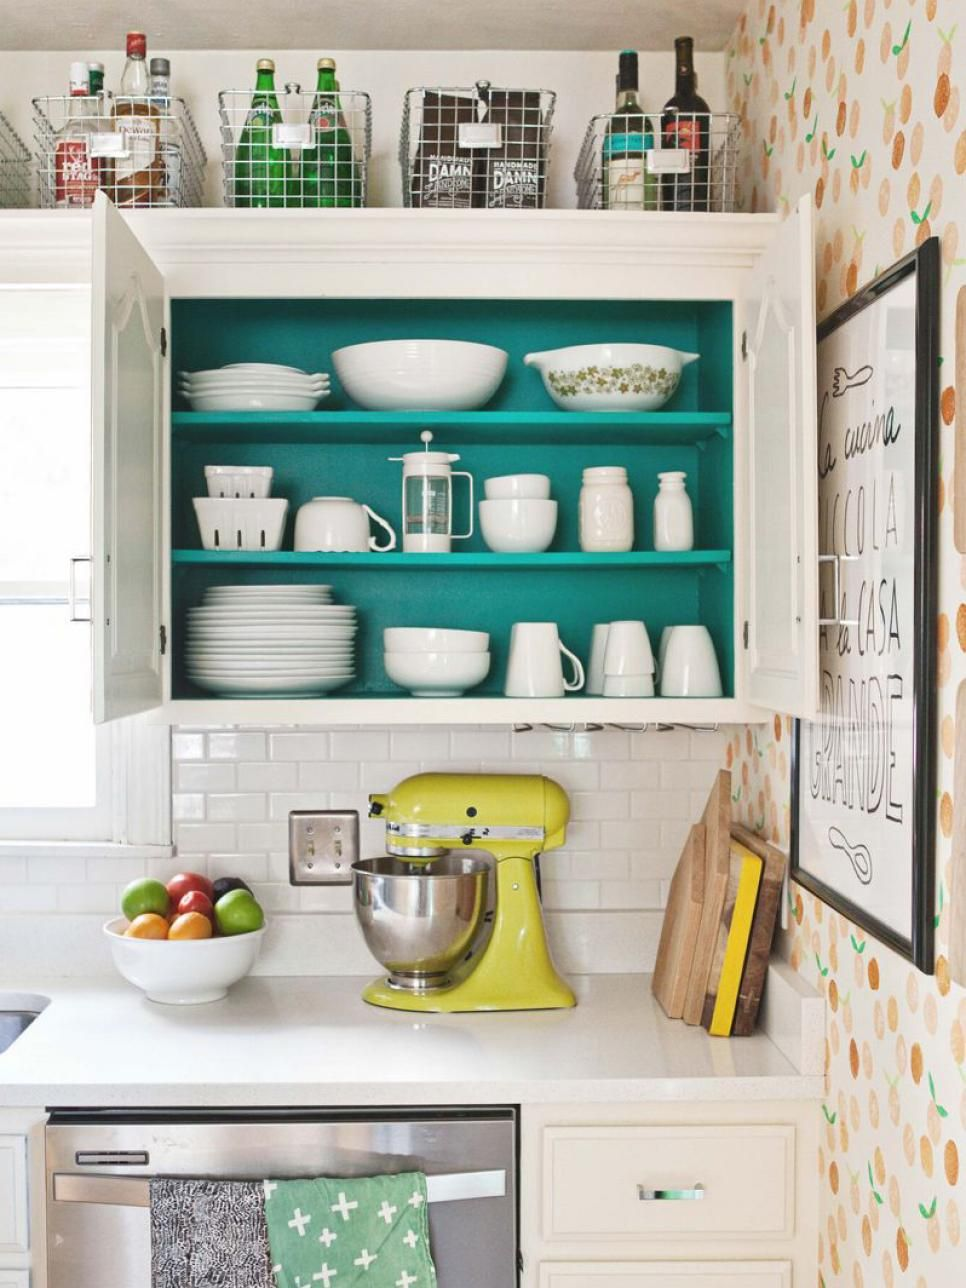 10 Ideas for Decorating Above Kitchen Cabinets | Smart storage ...